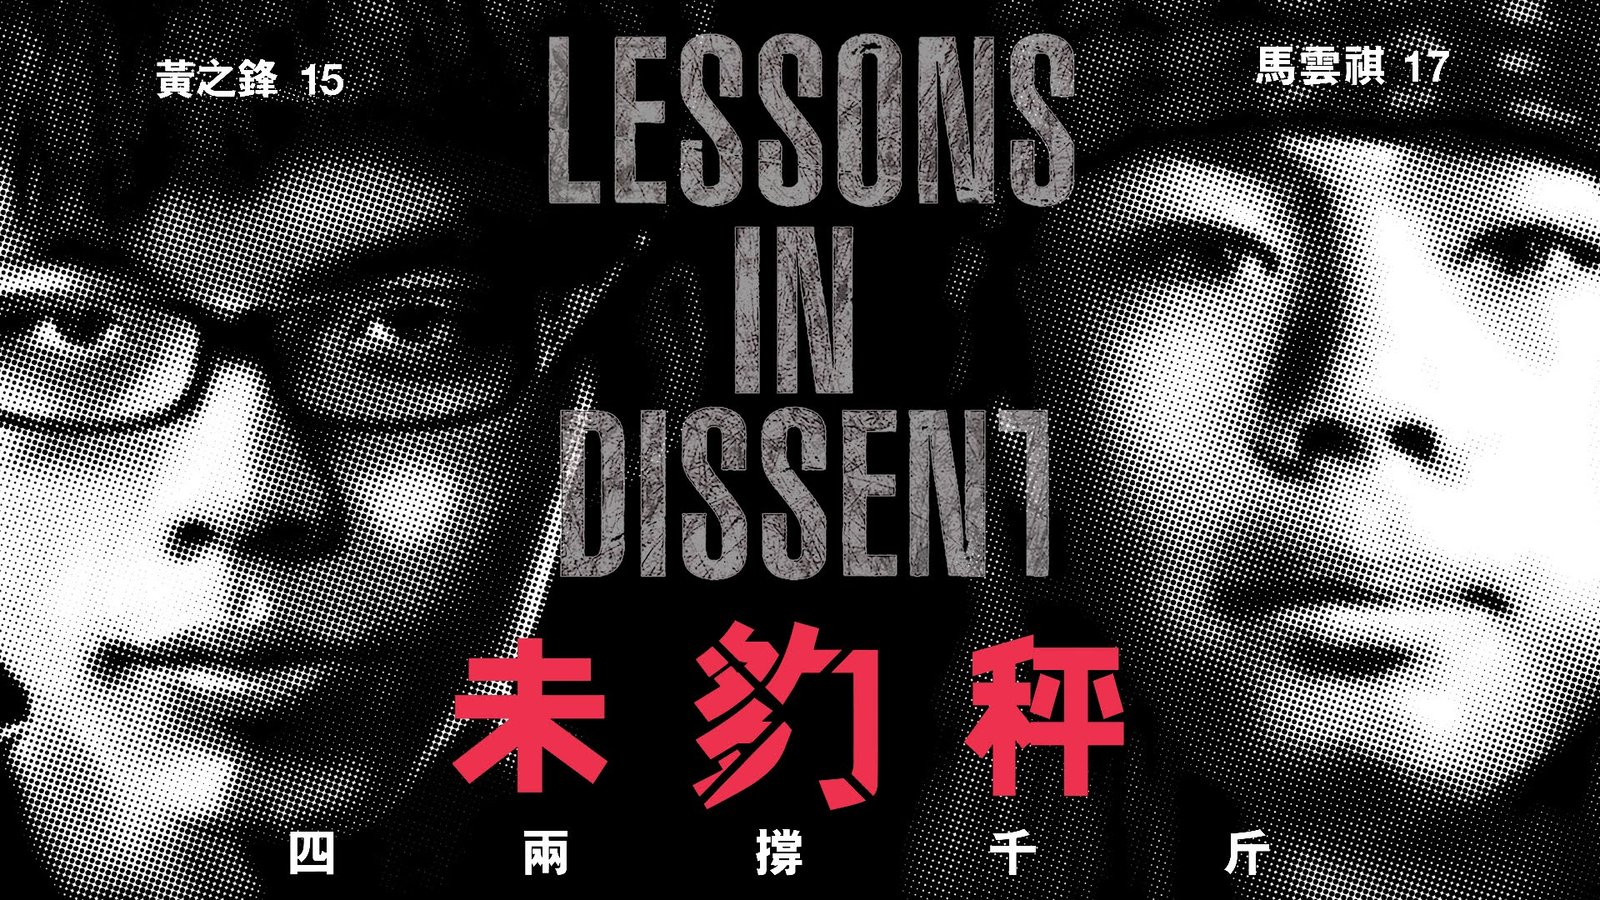 Lessons in Dissent - A New Generation of Hong Kong Democracy Activists